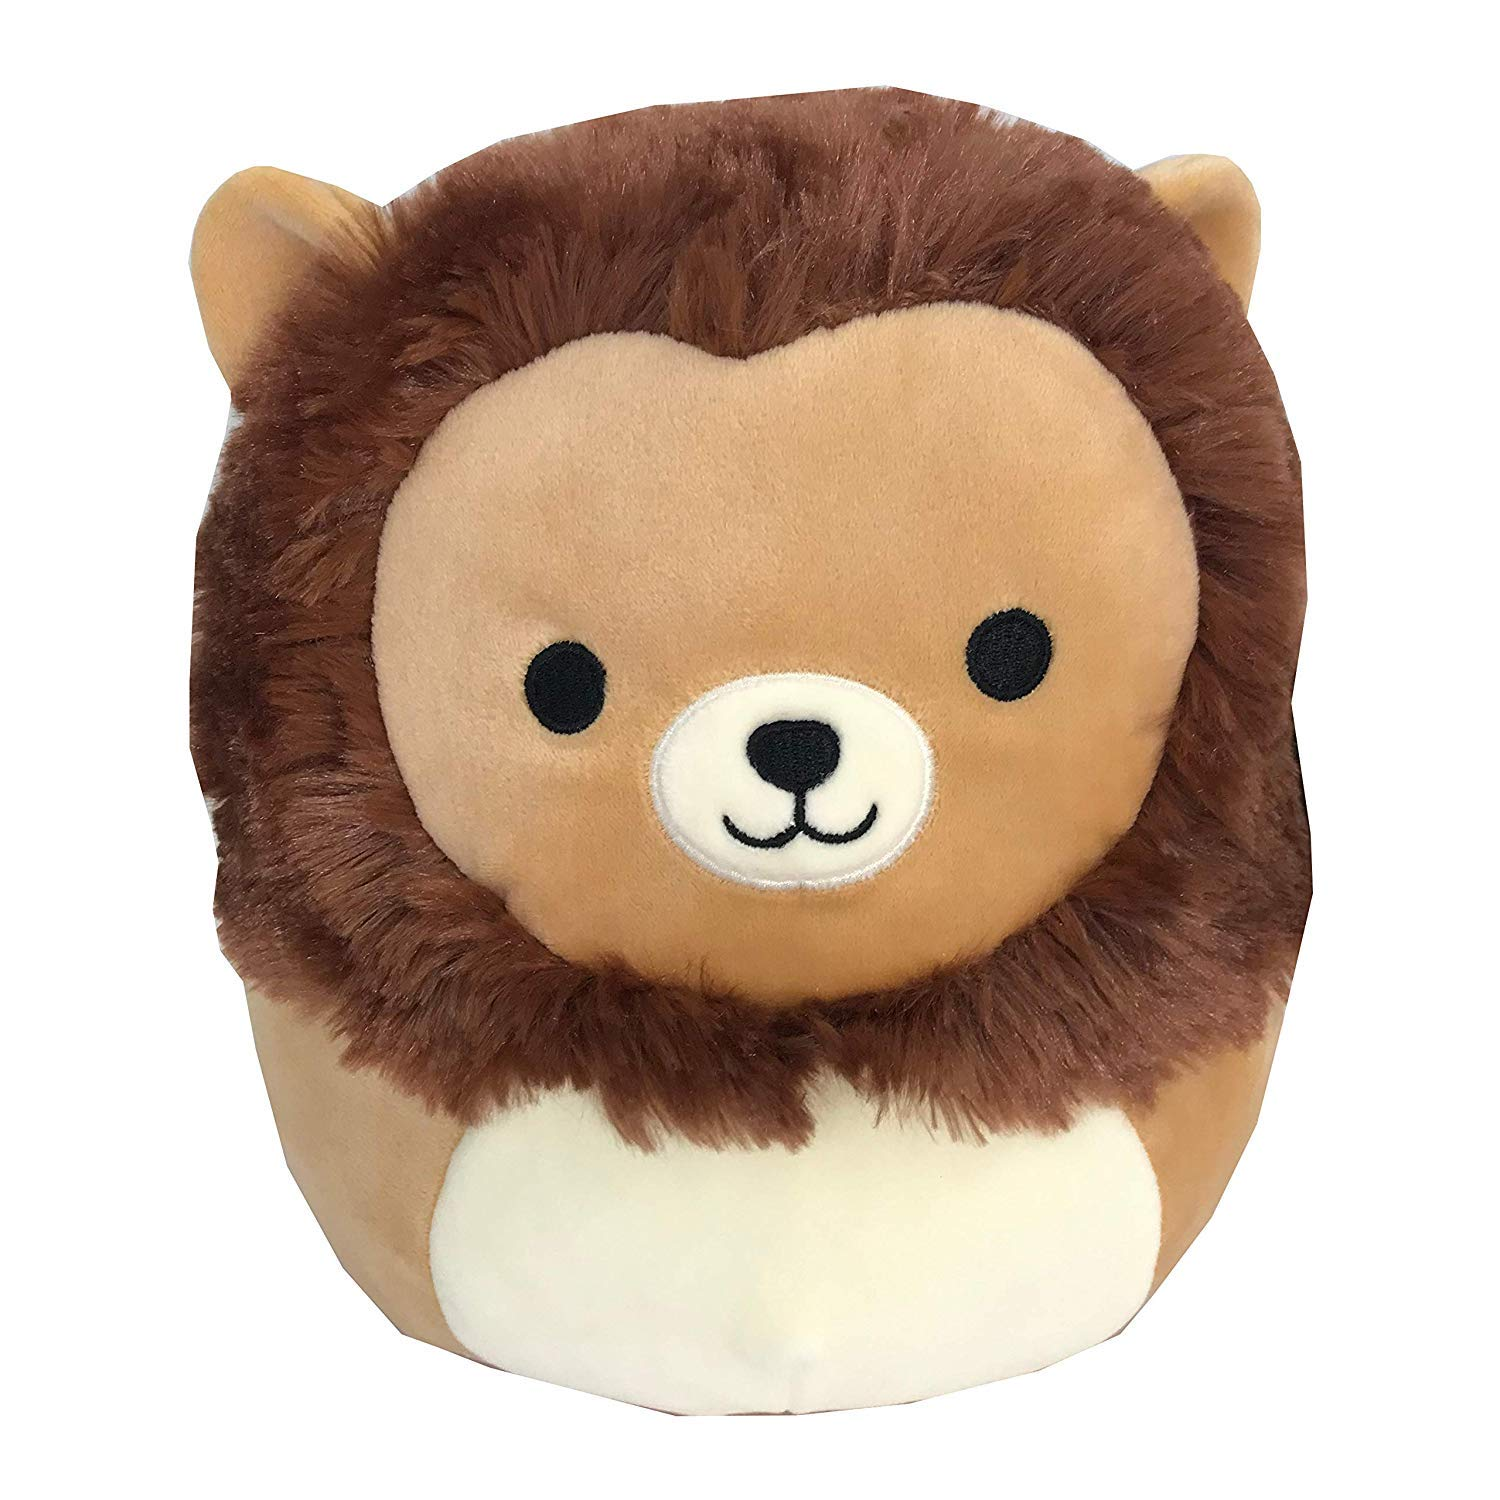 Squishmallow Original Kellytoy Brown Lion 16'' Stuffed Animal Pet Pillow Easter Holiday Birthday Gift by Kelly Toy